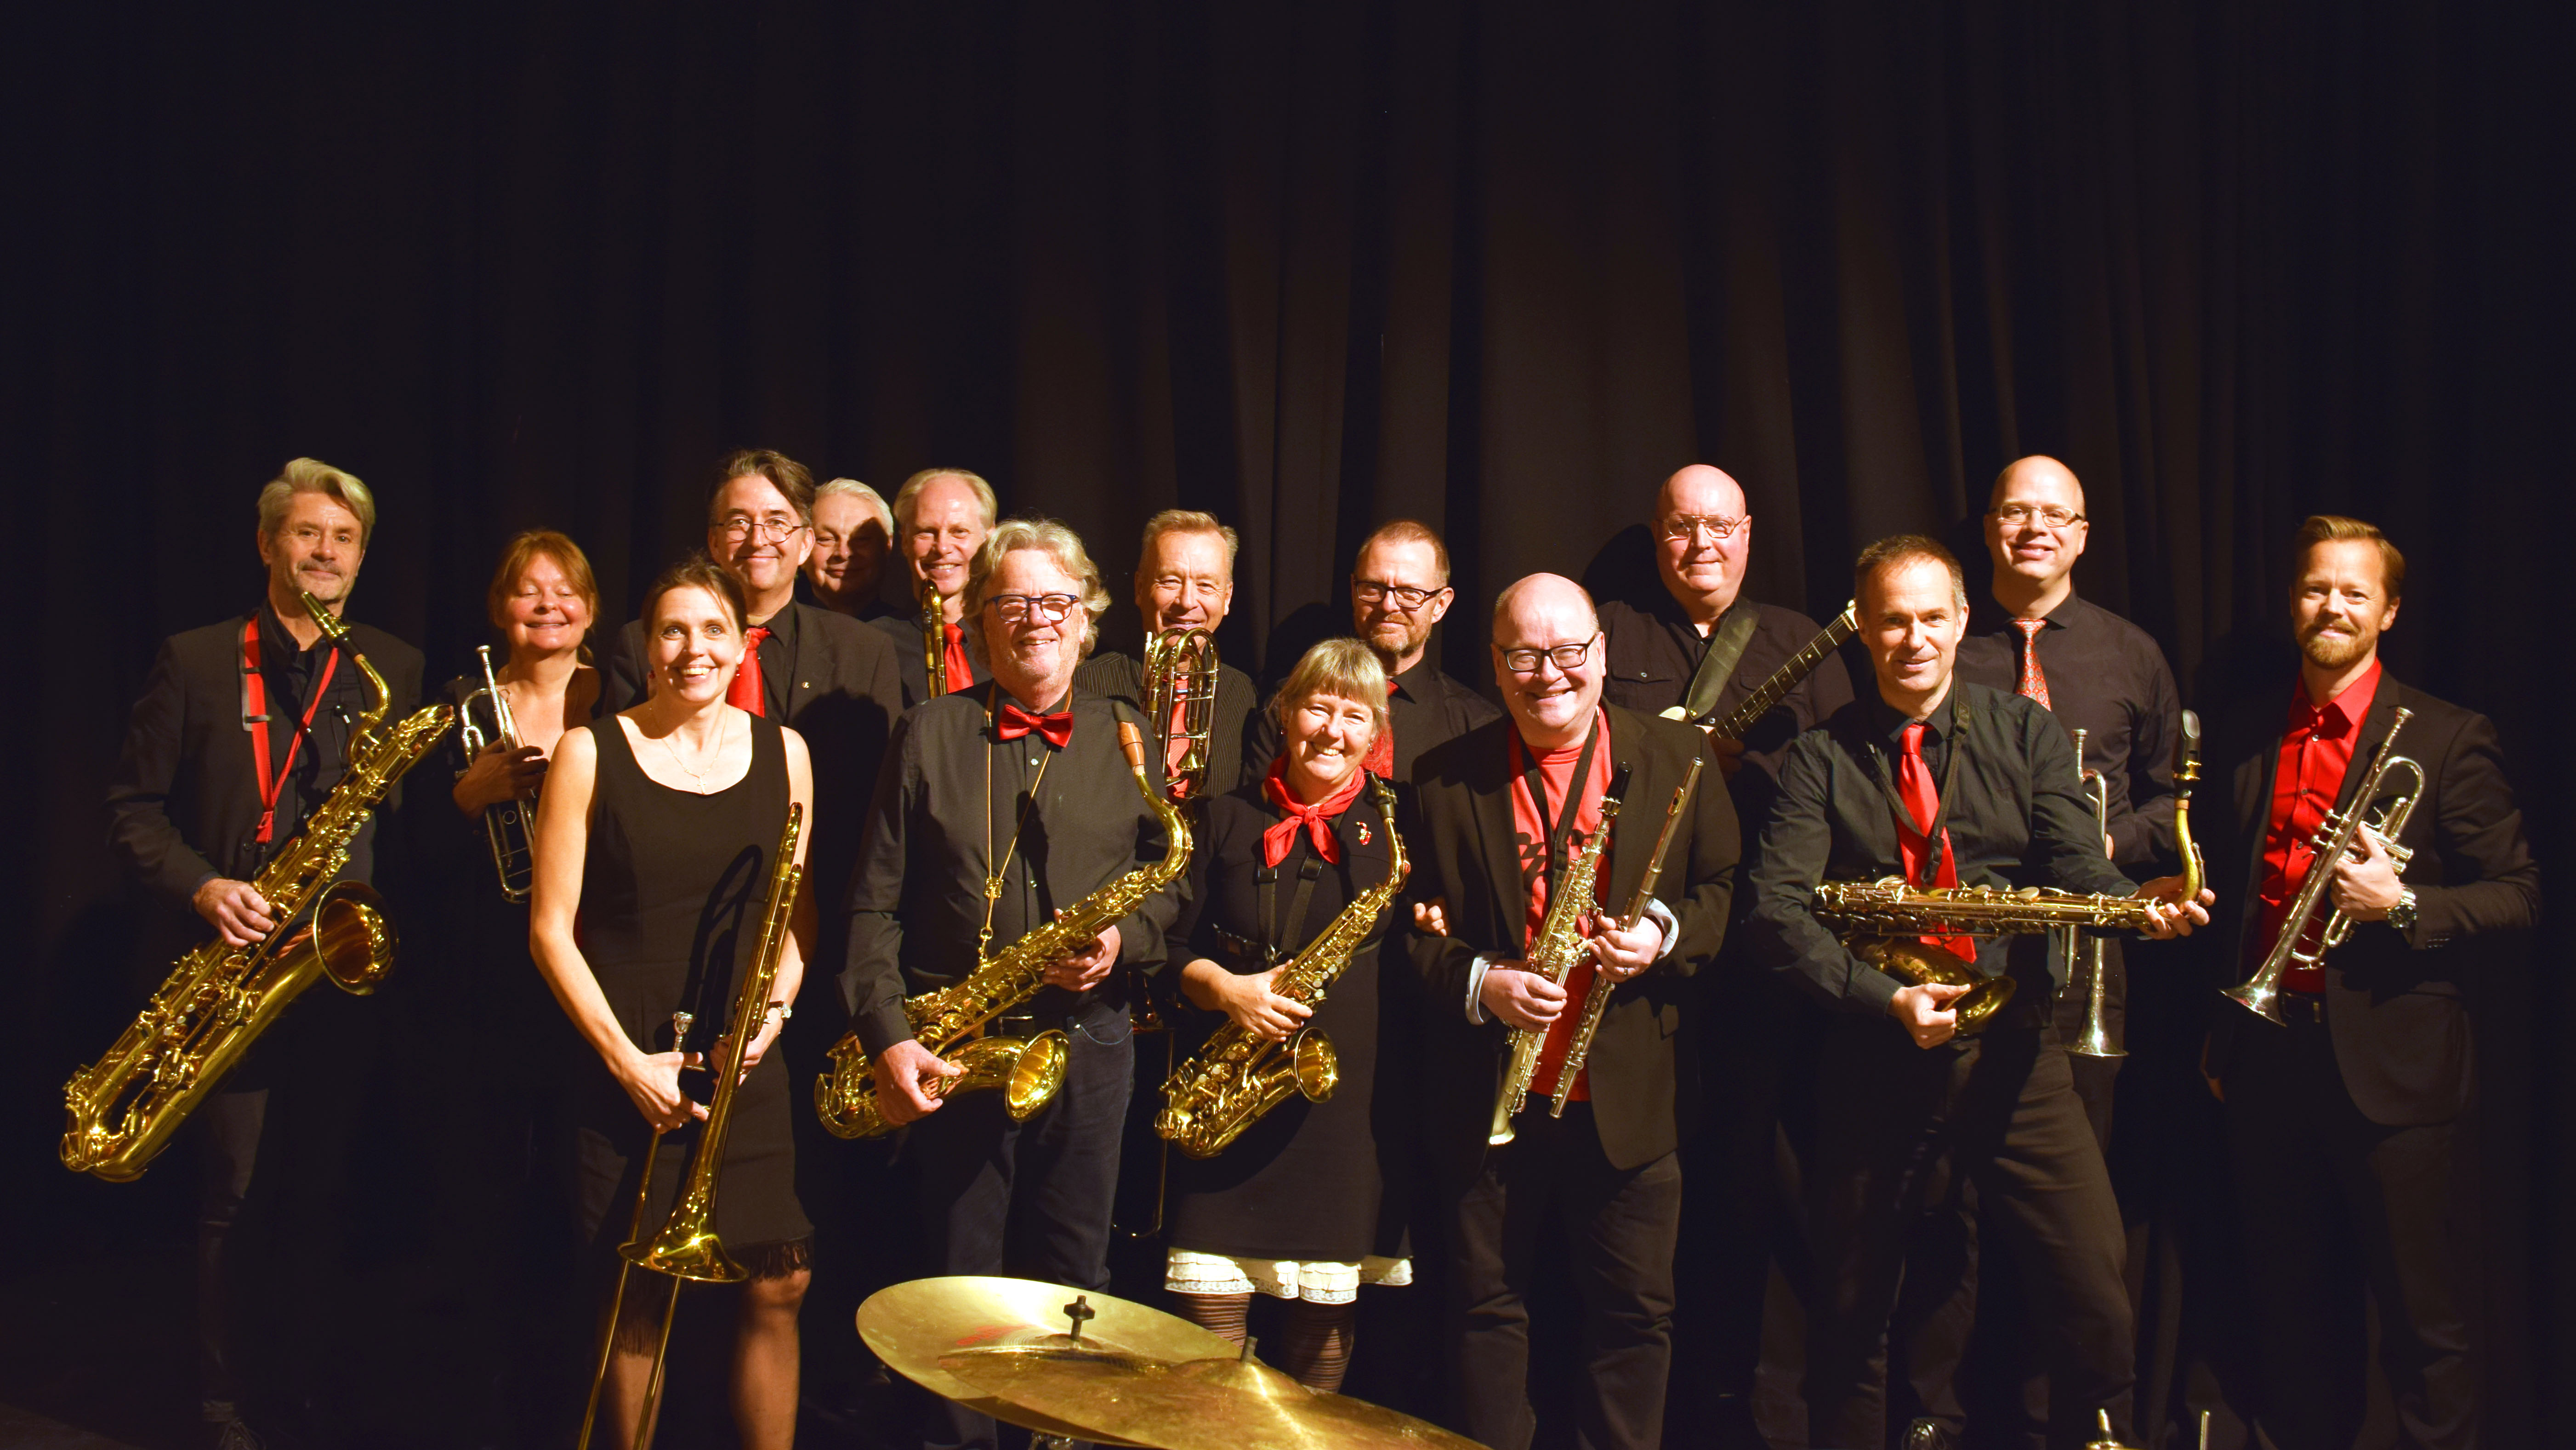 Huddinge Big Band